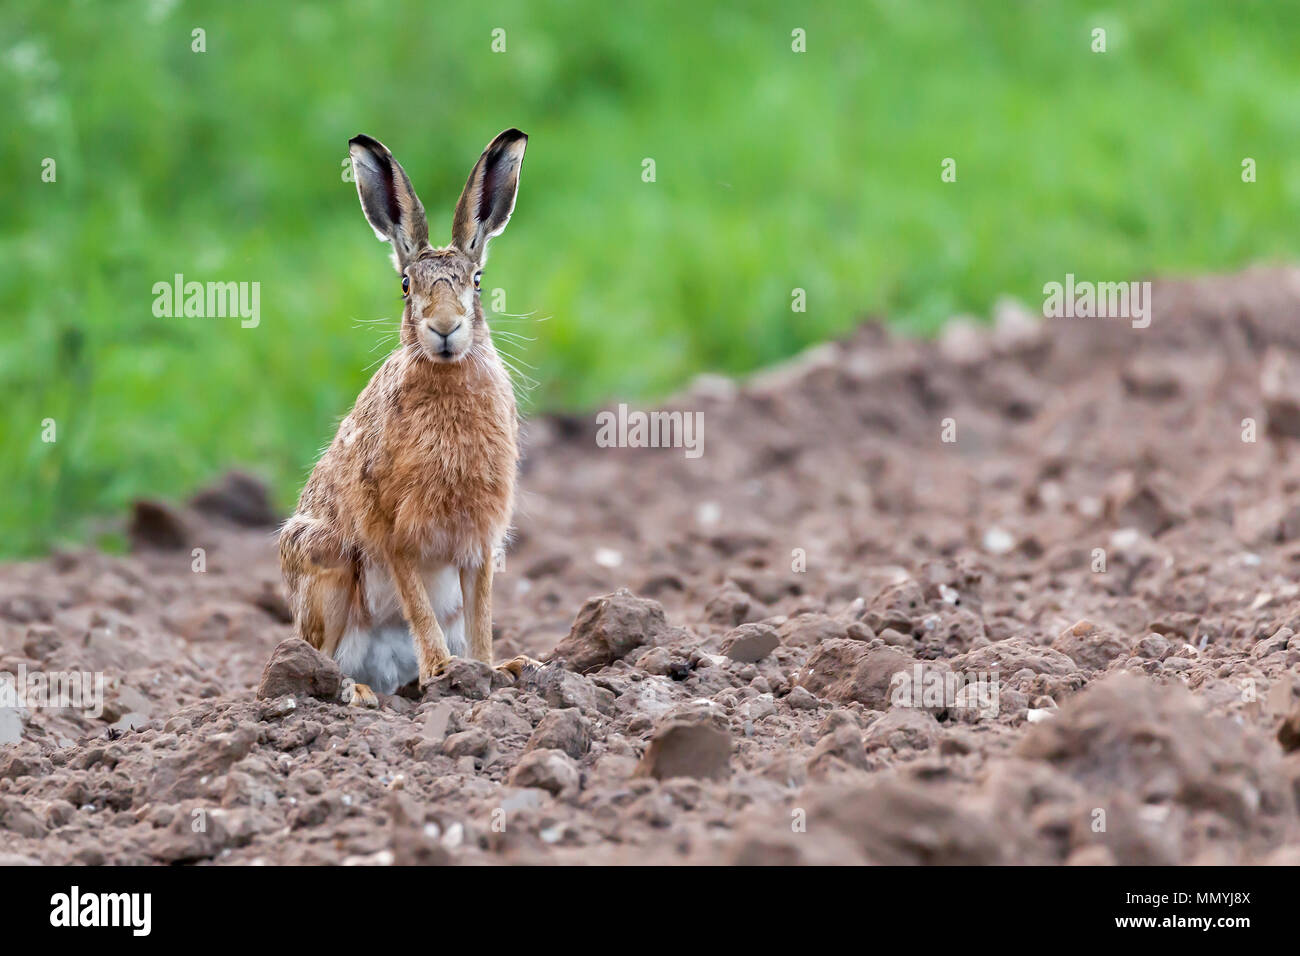 Wild hare assis regardant directement à l'appareil photo. Portrait de la faune dans le Norfolk UK Photo Stock